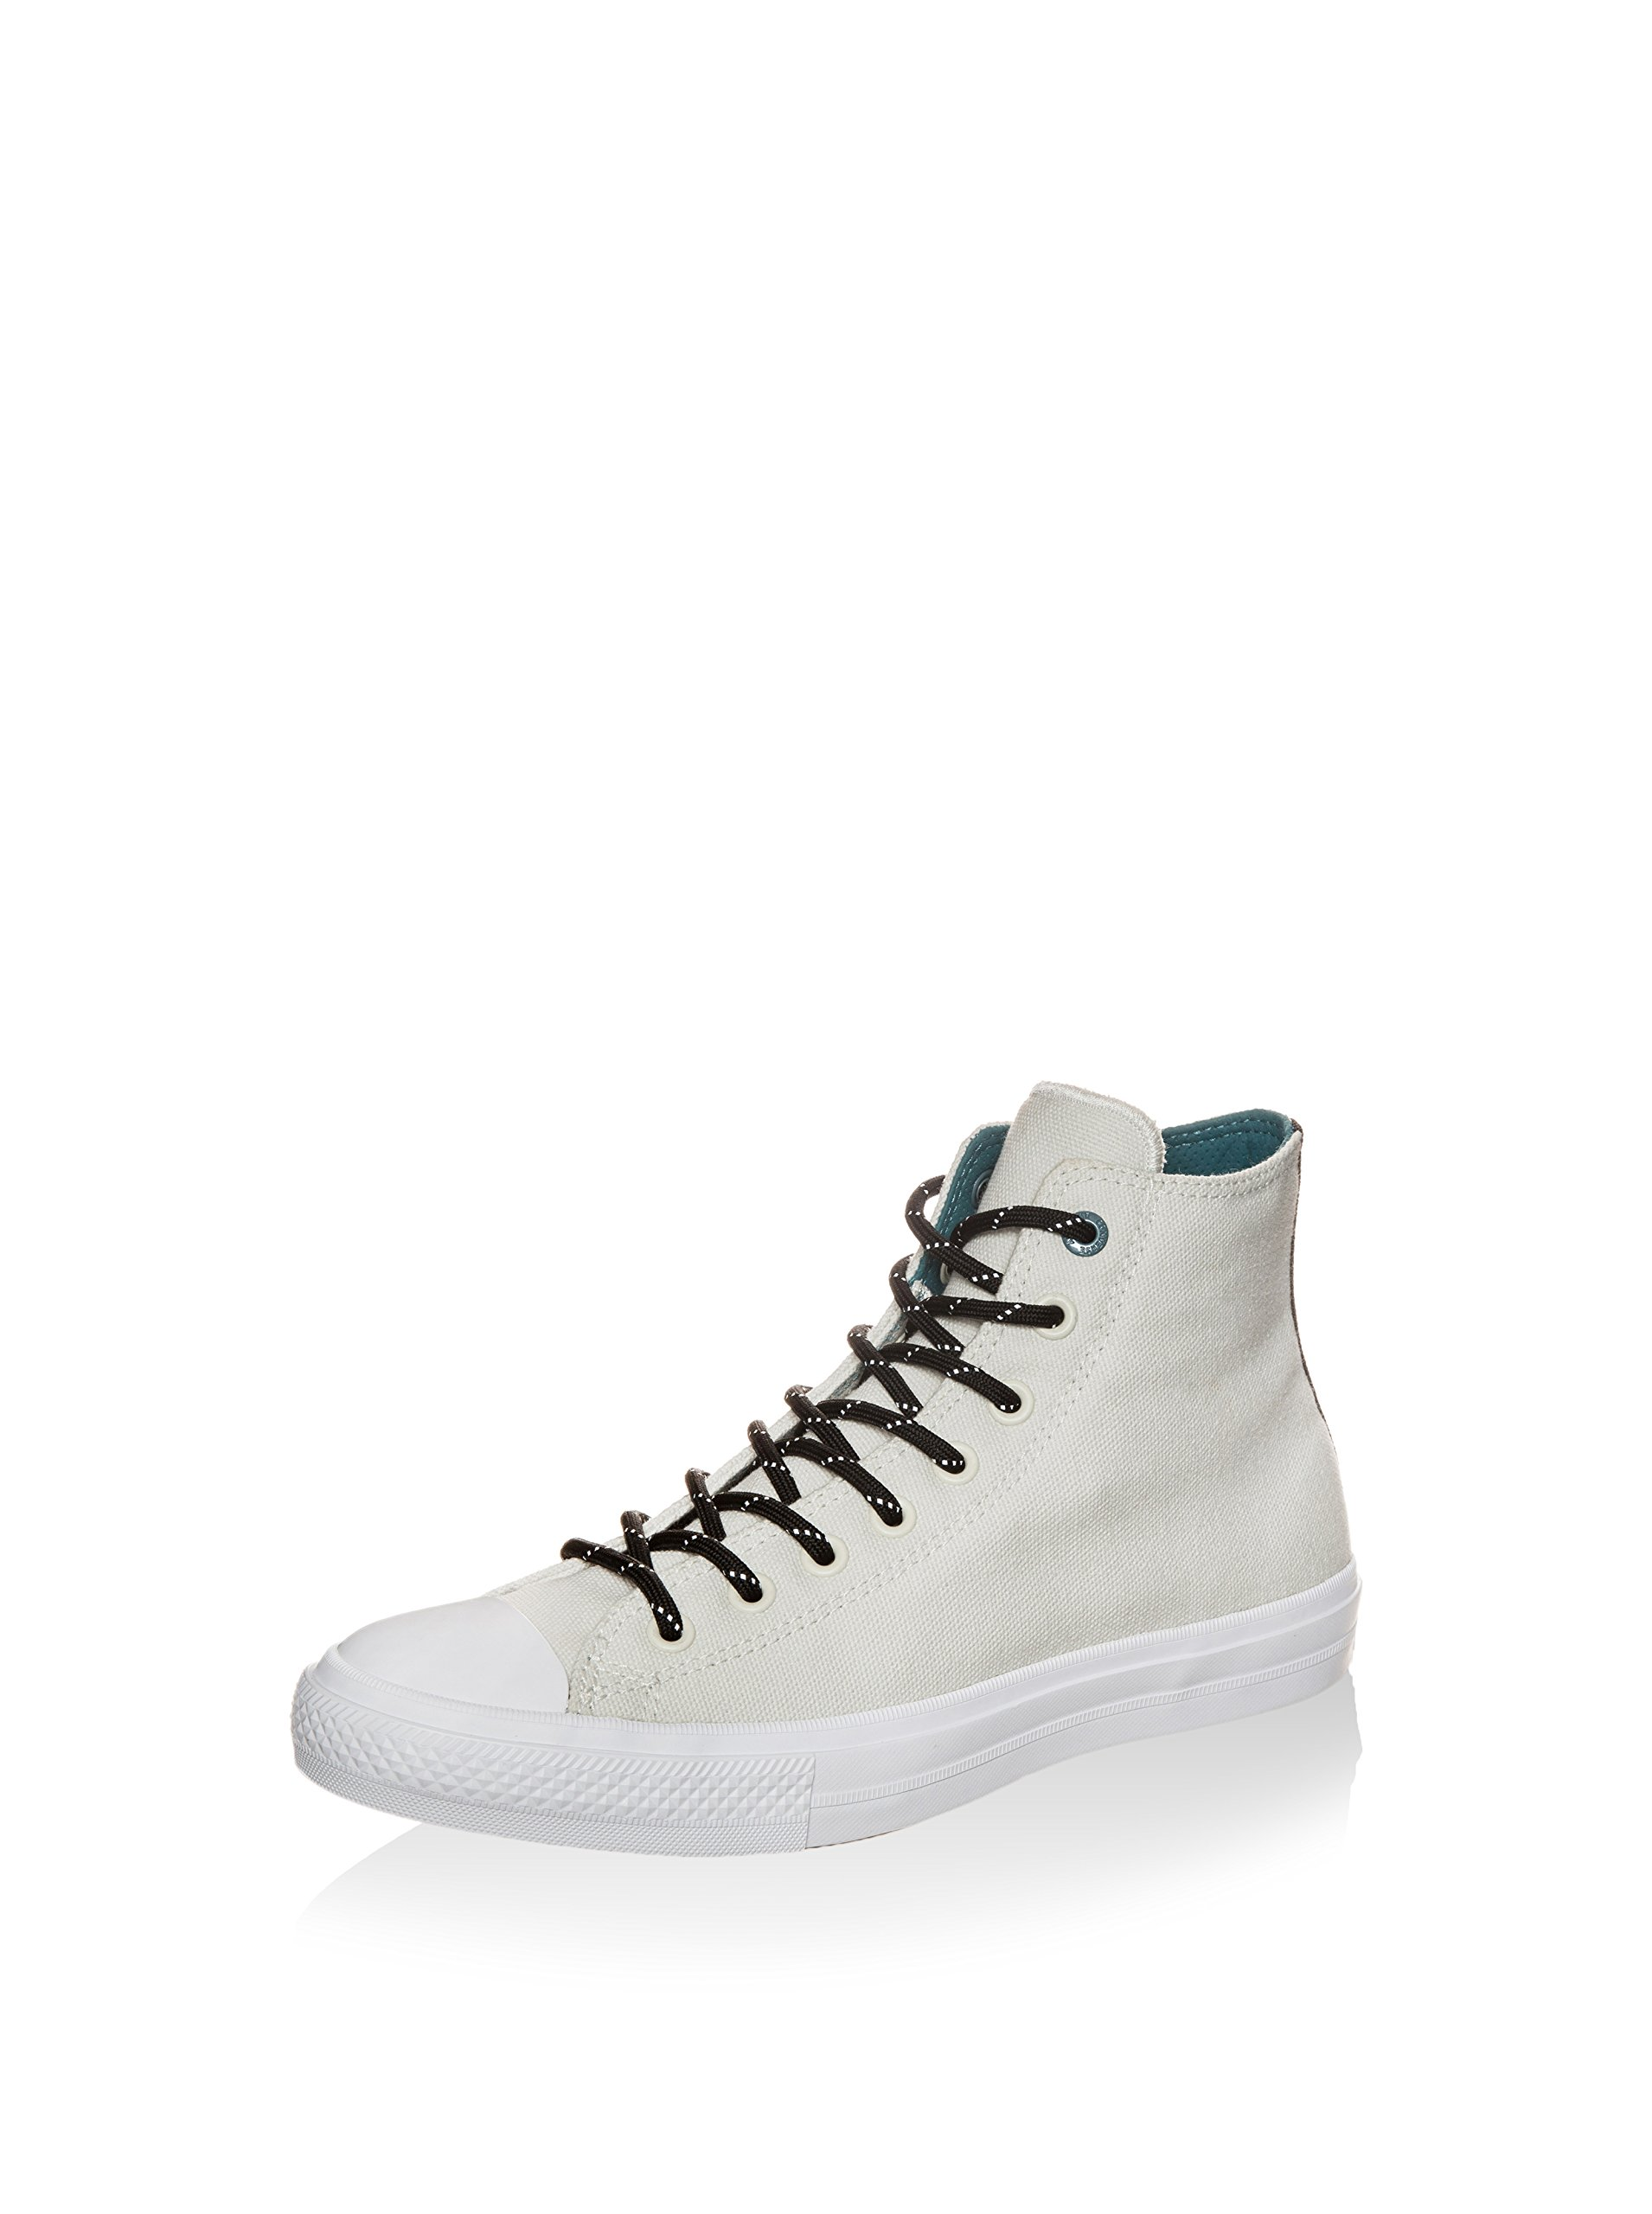 Converse CTAS II HI Chuck Taylor All Star Climate Counter Buff/Cool Jade/White (10 B(M) US Womens / 8 D(M) US Mens)